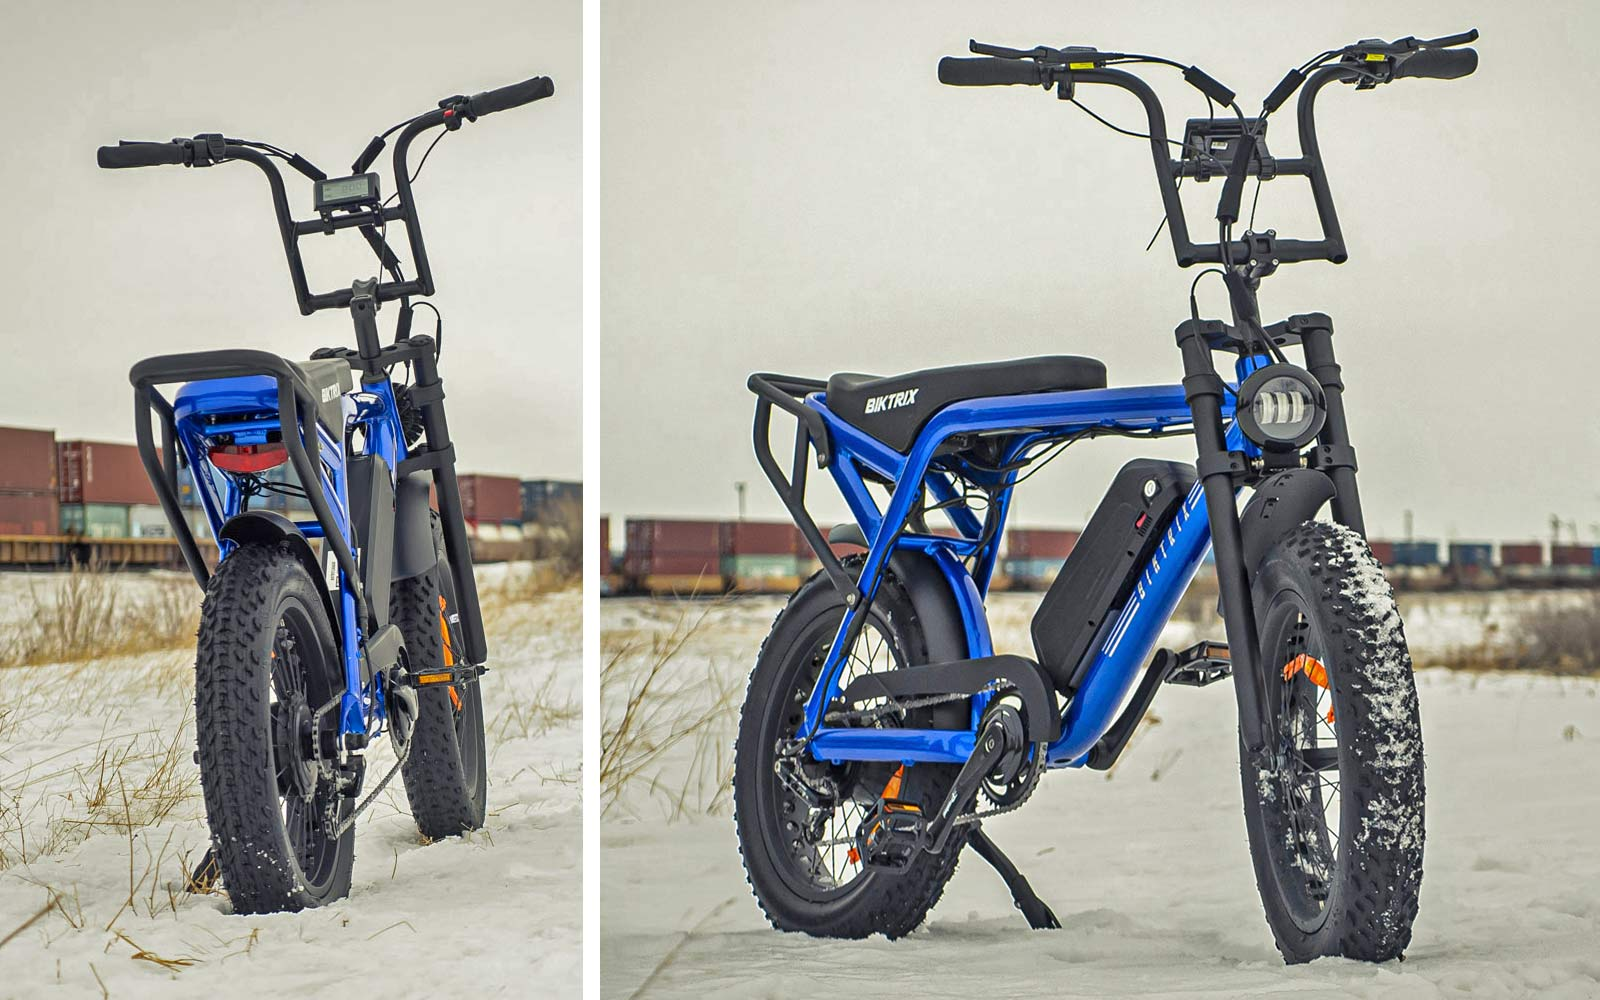 Biktrix Moto e-bike, urban mobility eMTB e-moped alternative transportation, details